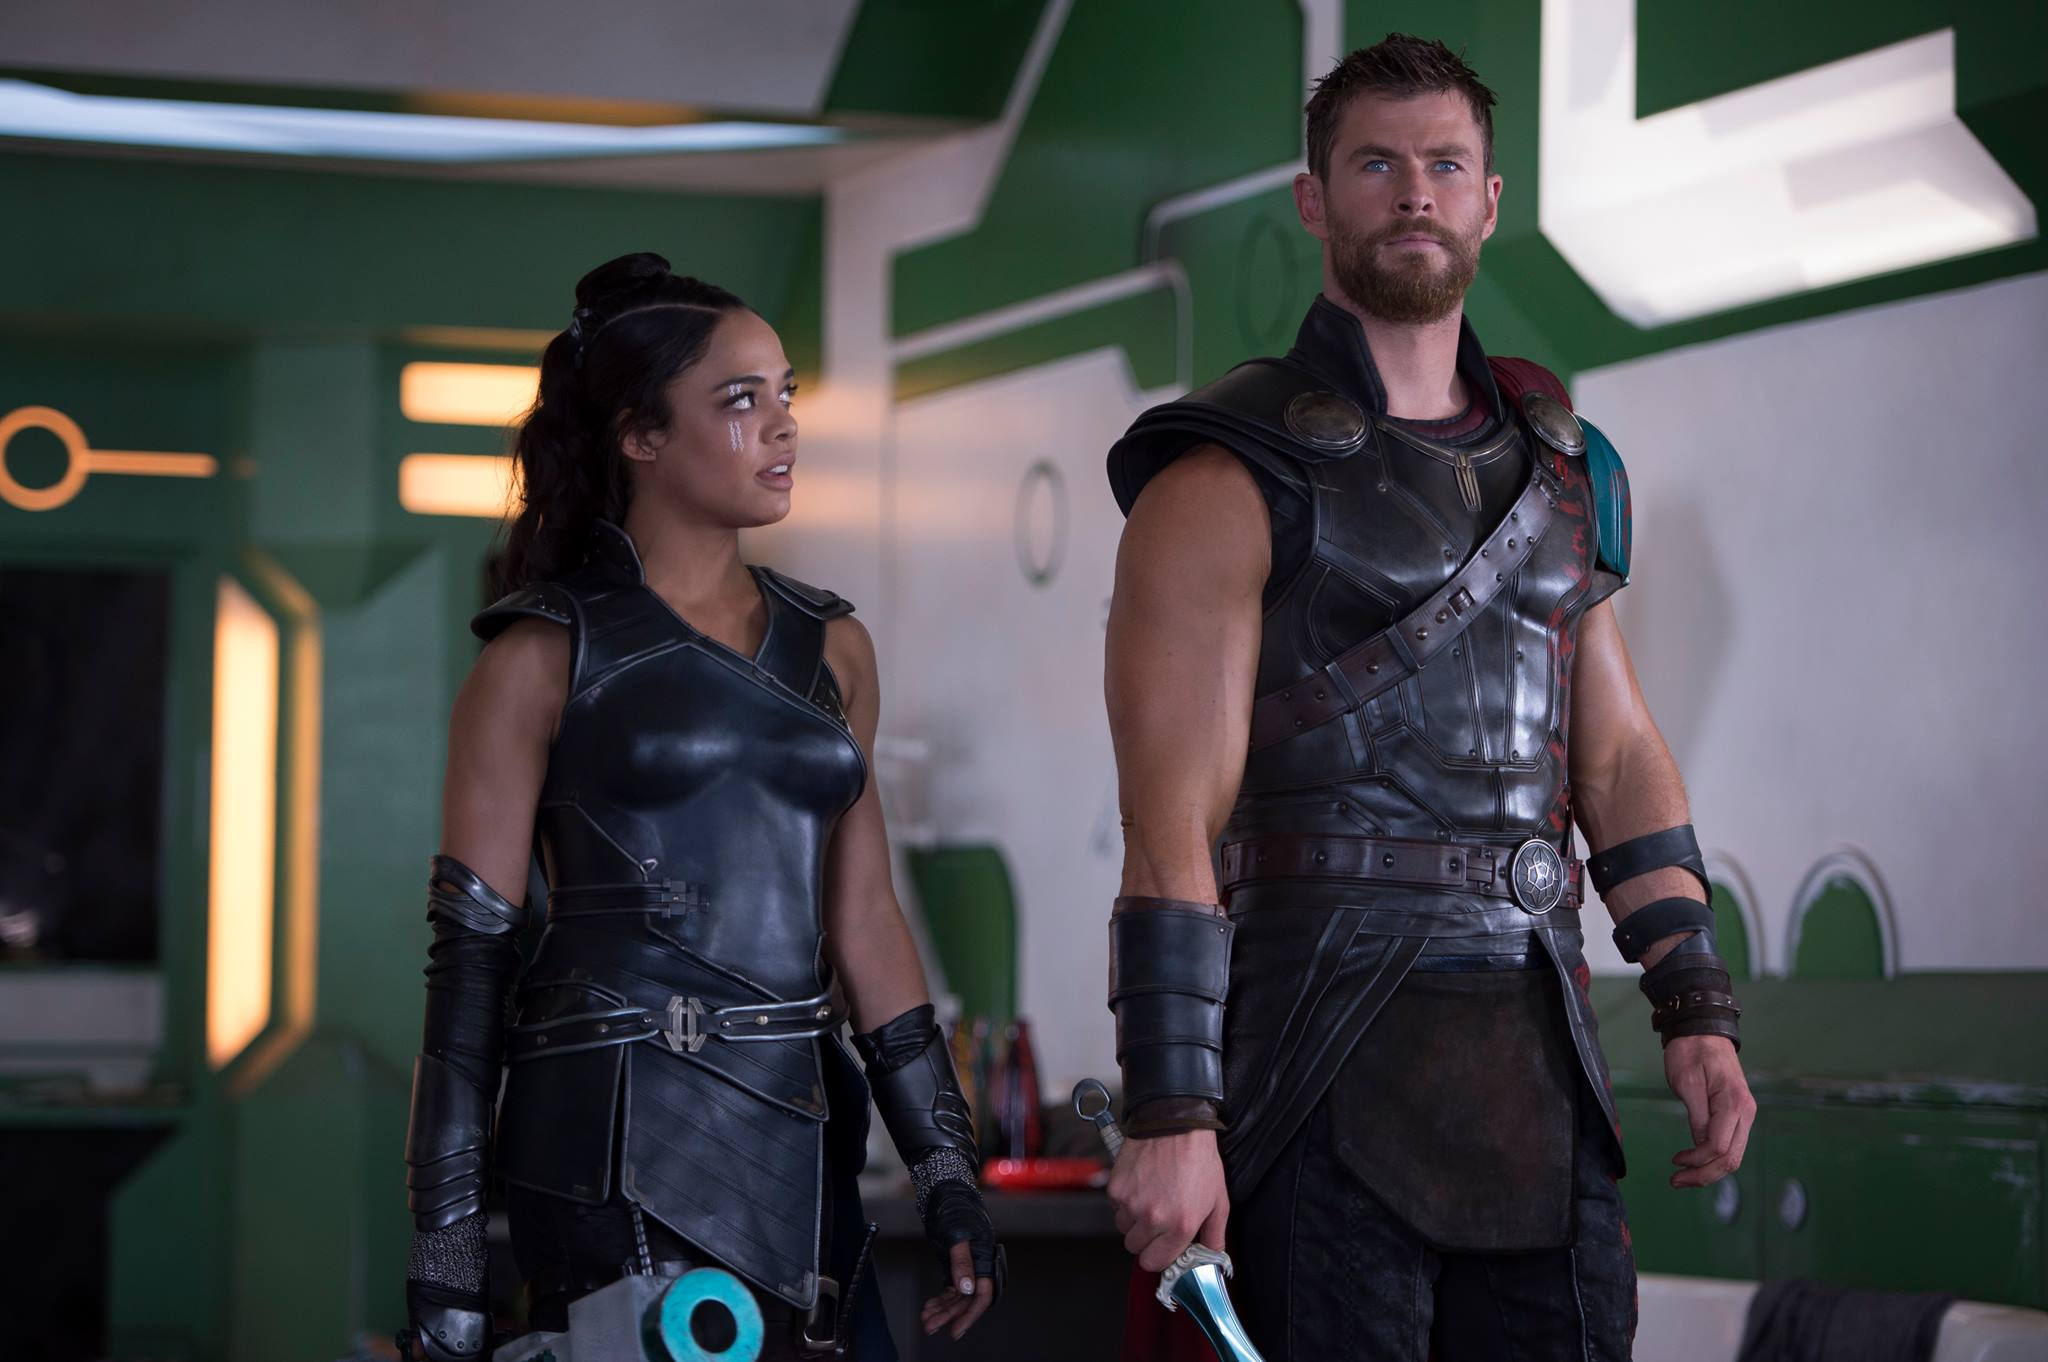 Chris Hemsworth Talks About Thor's Relationship With Loki